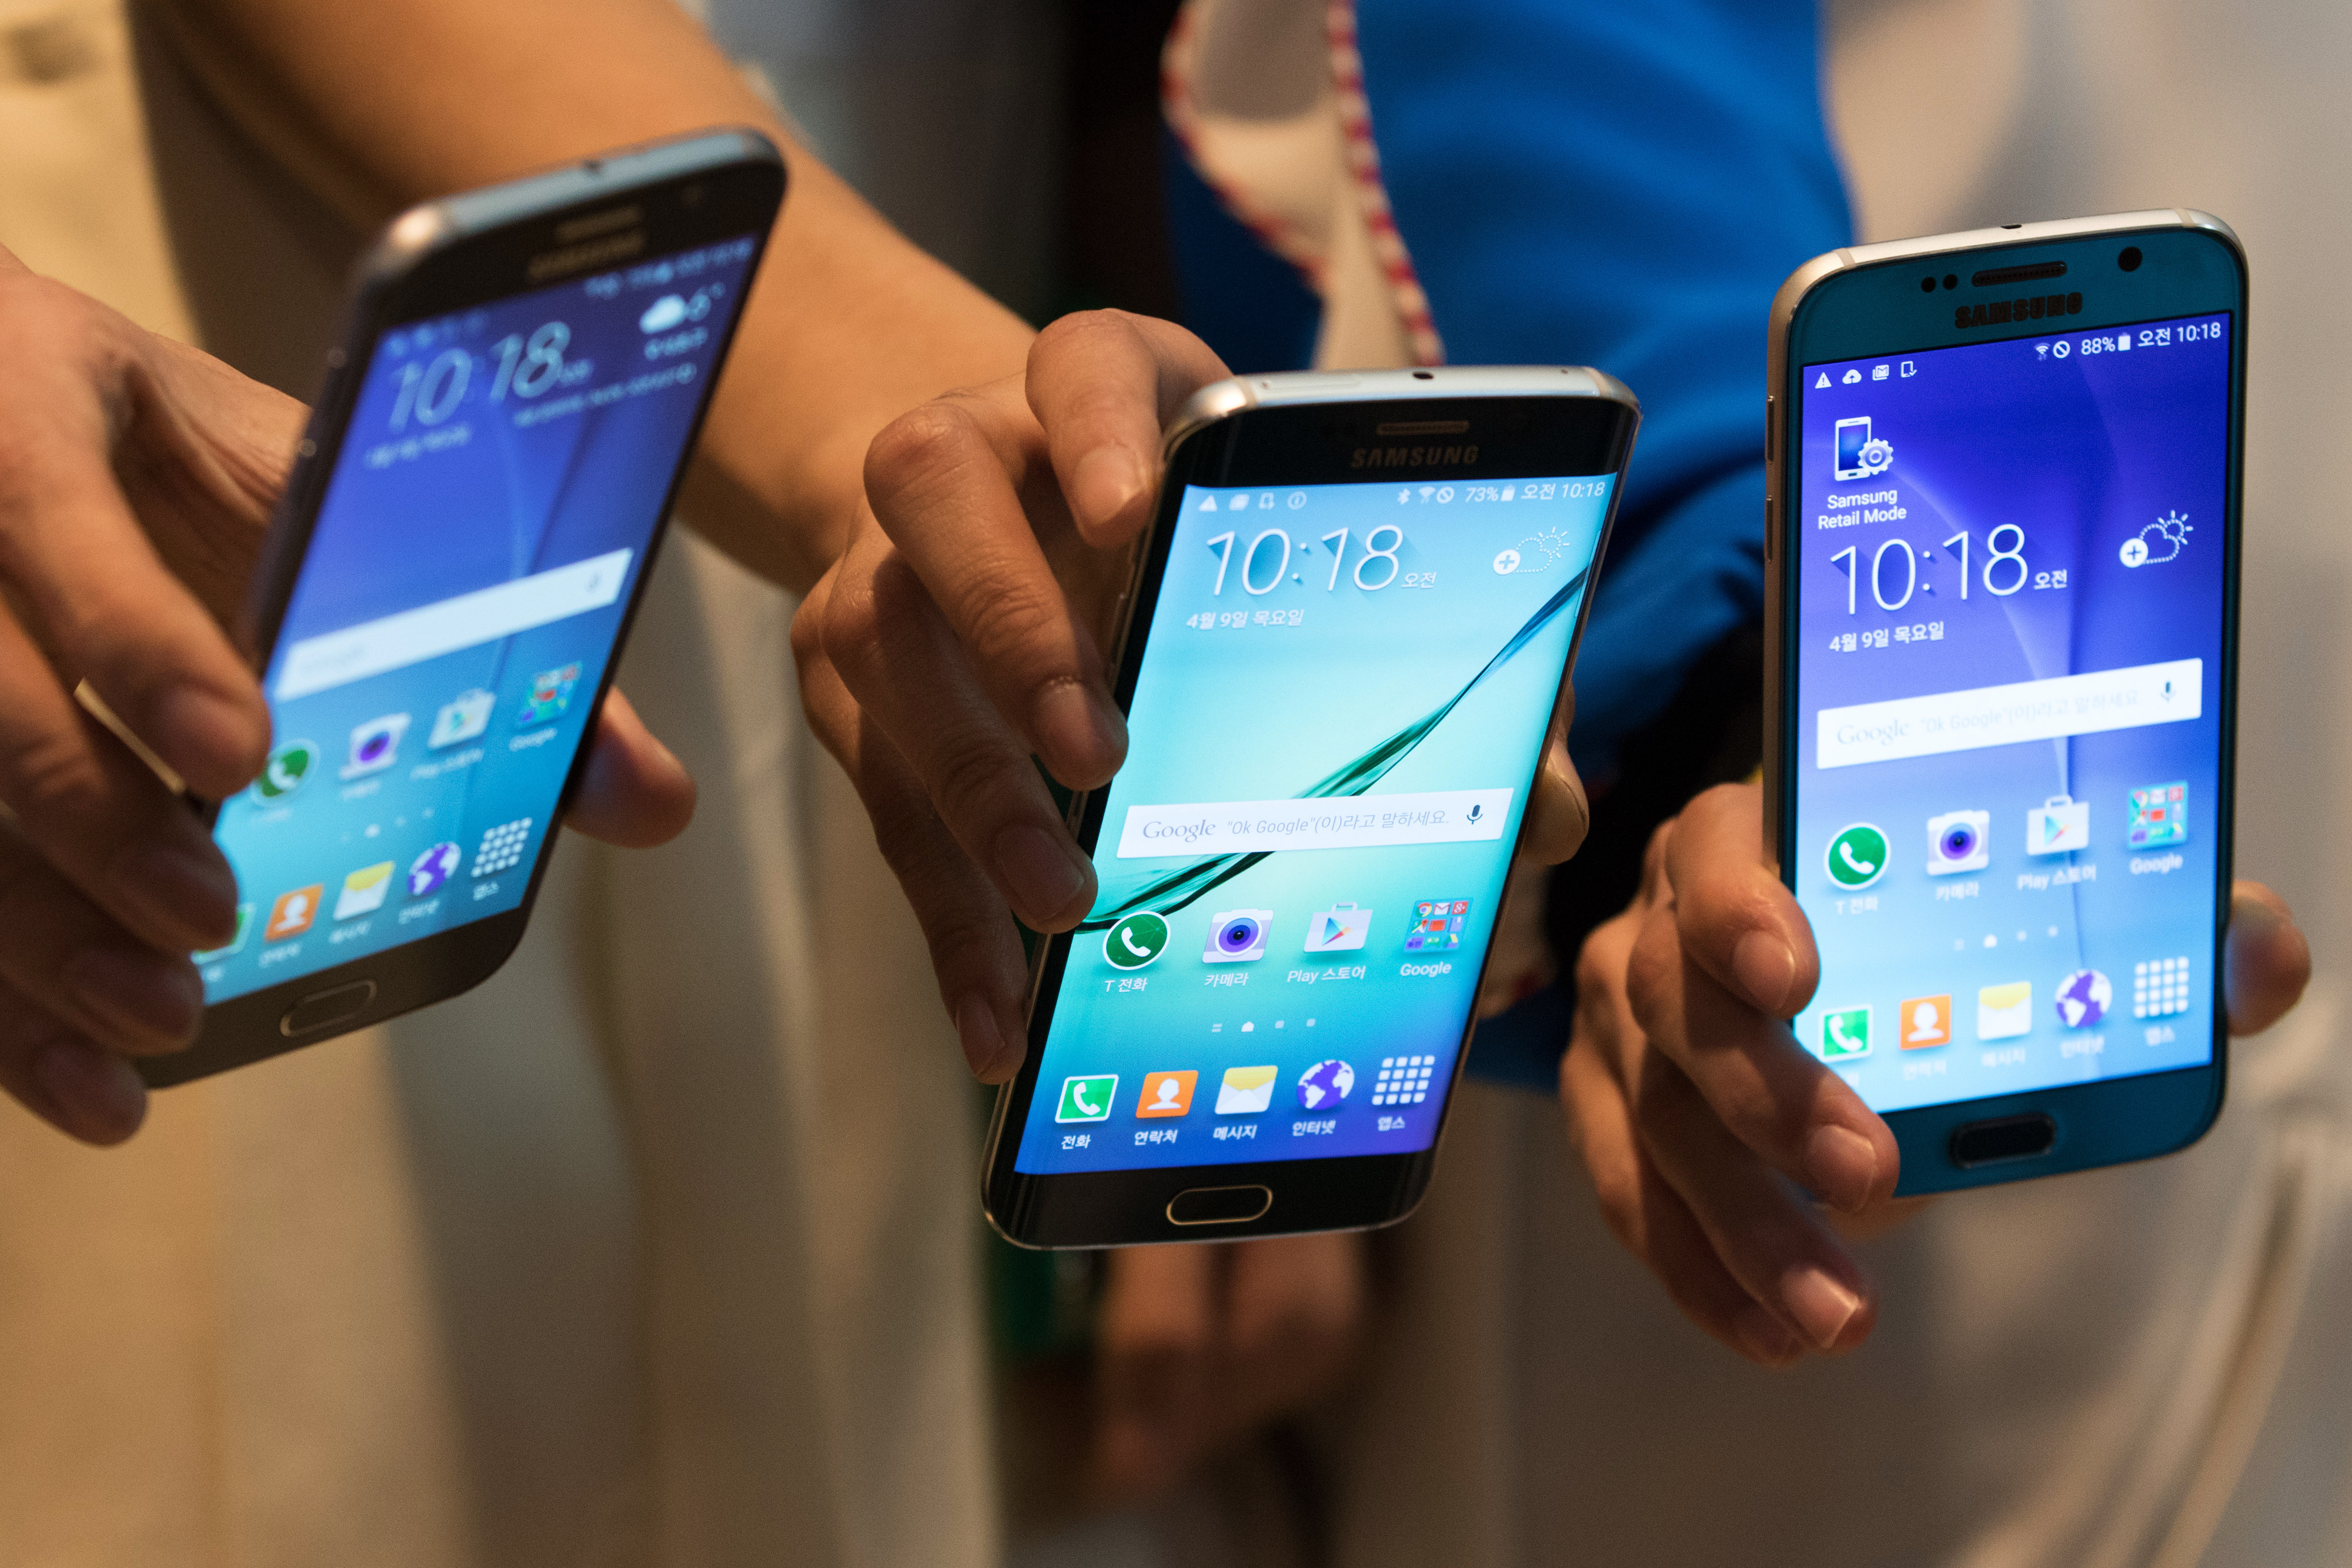 Samsung Galaxy keyboard bug exposes hundreds of millions to